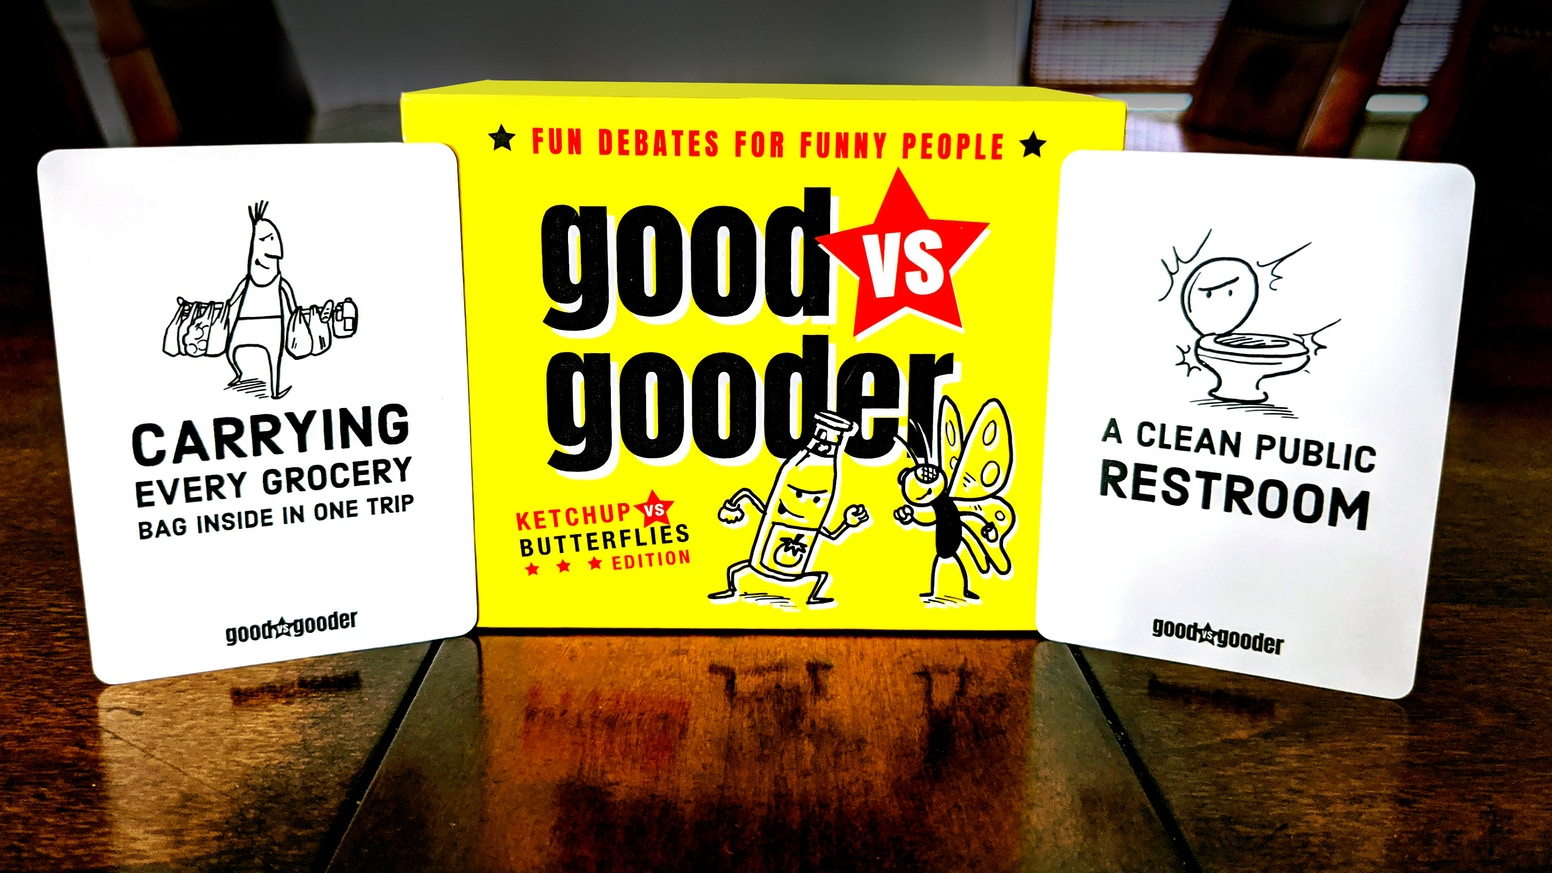 Fun debates for funny people—a family-friendly party game celebrating the gooder things in life